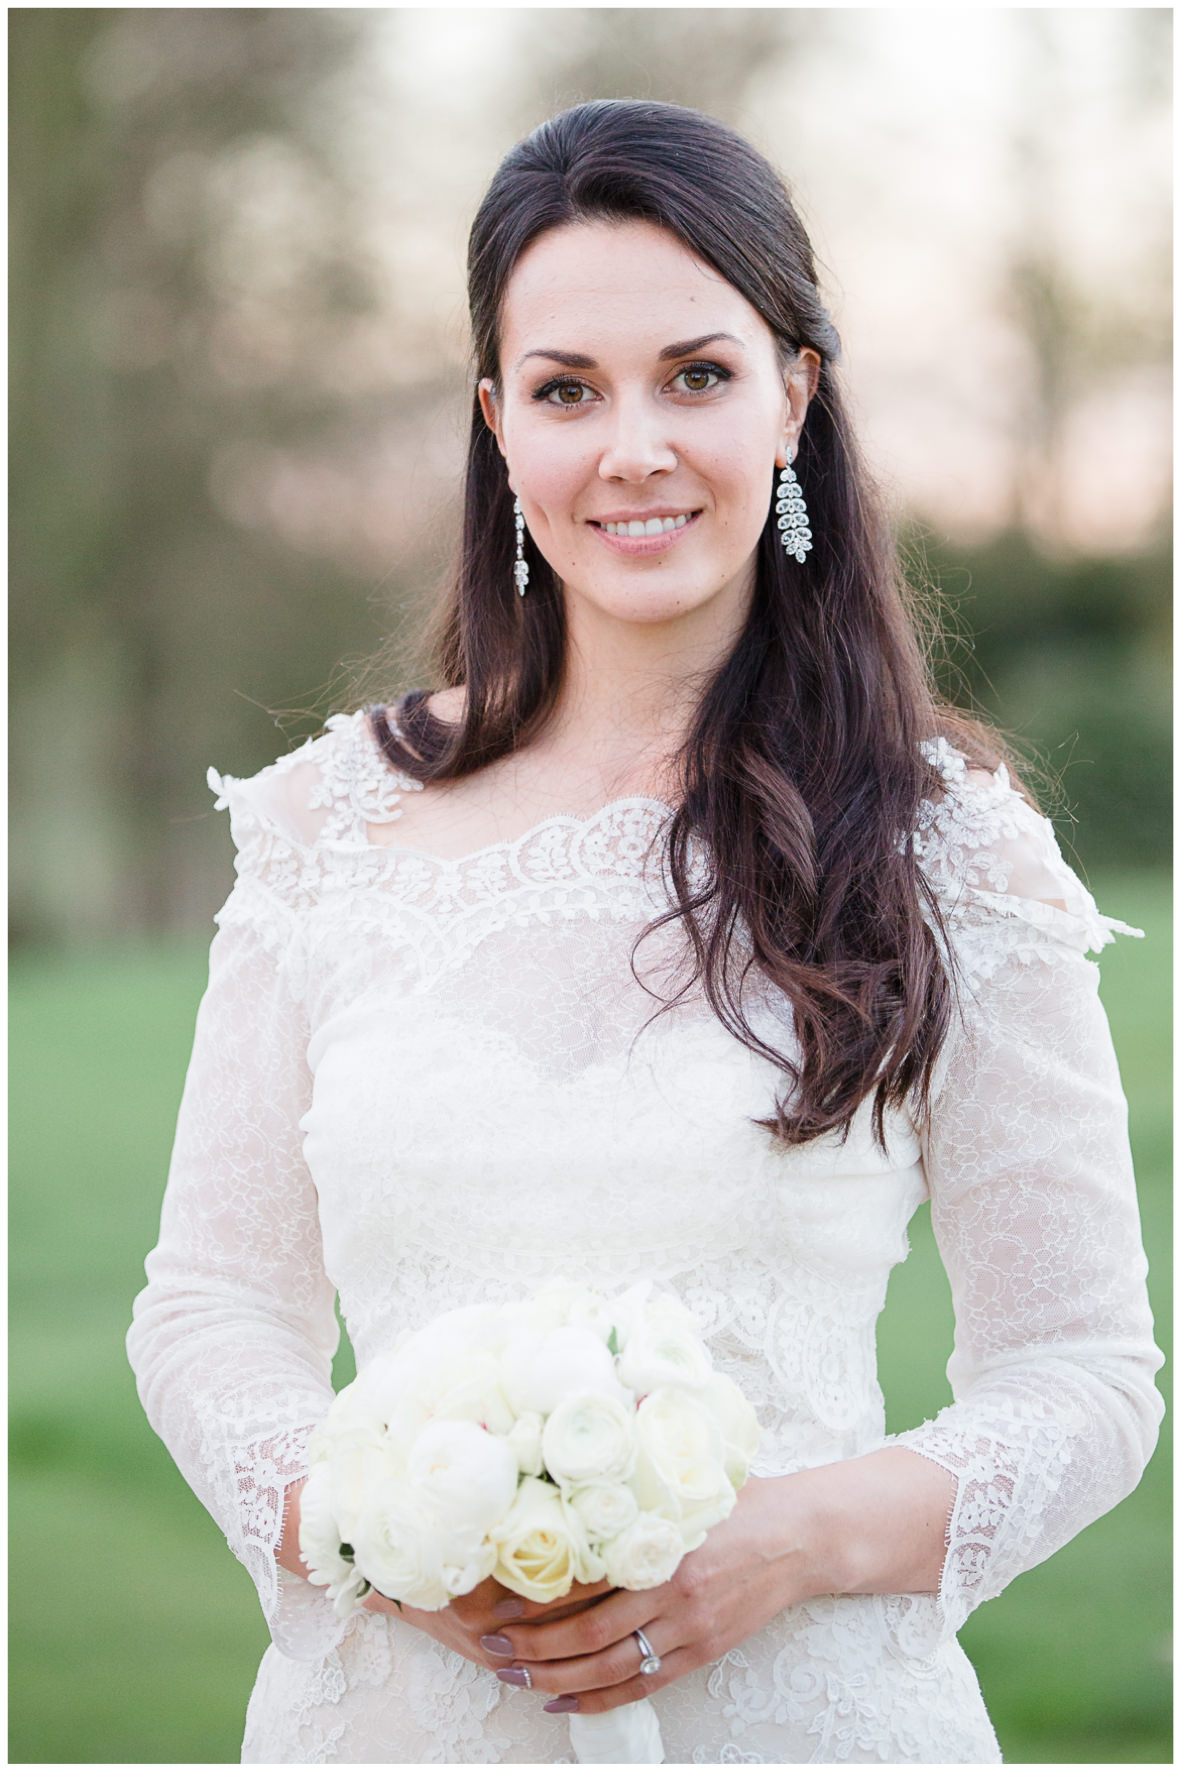 Lucy Davenport Photography, Katrina Otter Weddings, Chippenham Park, bride, bridal portrait